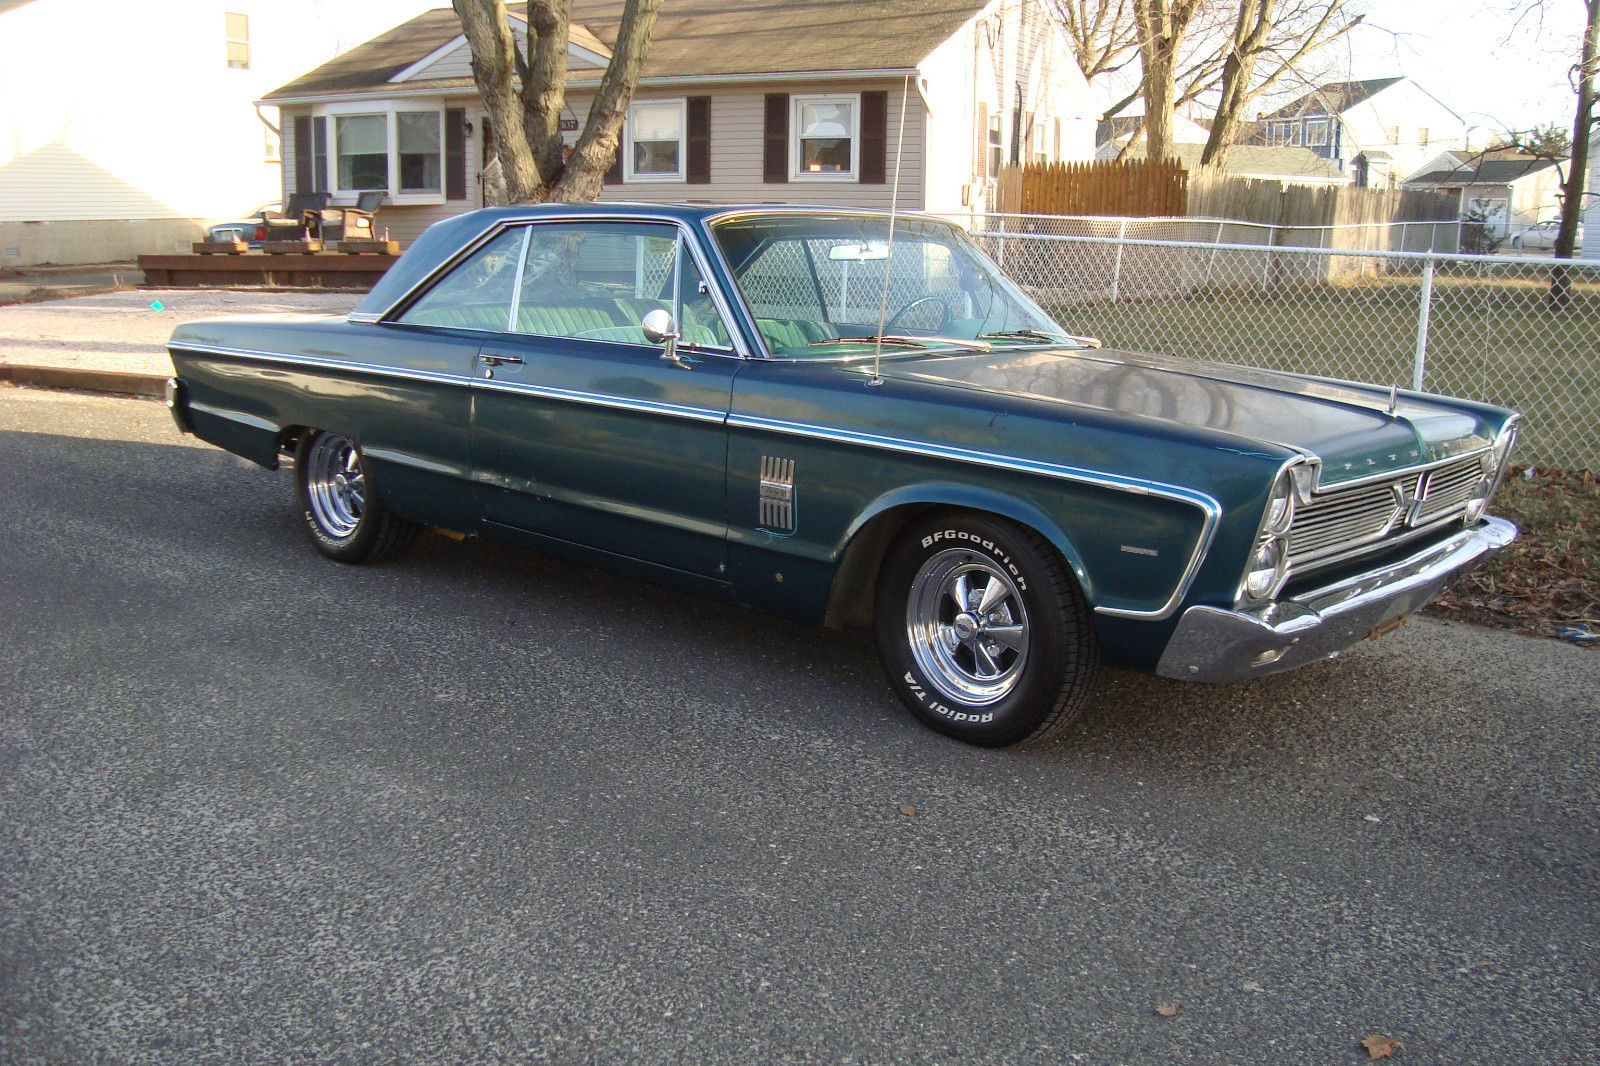 1966 plymouth fury iii 2 door sport coupe classic. Black Bedroom Furniture Sets. Home Design Ideas